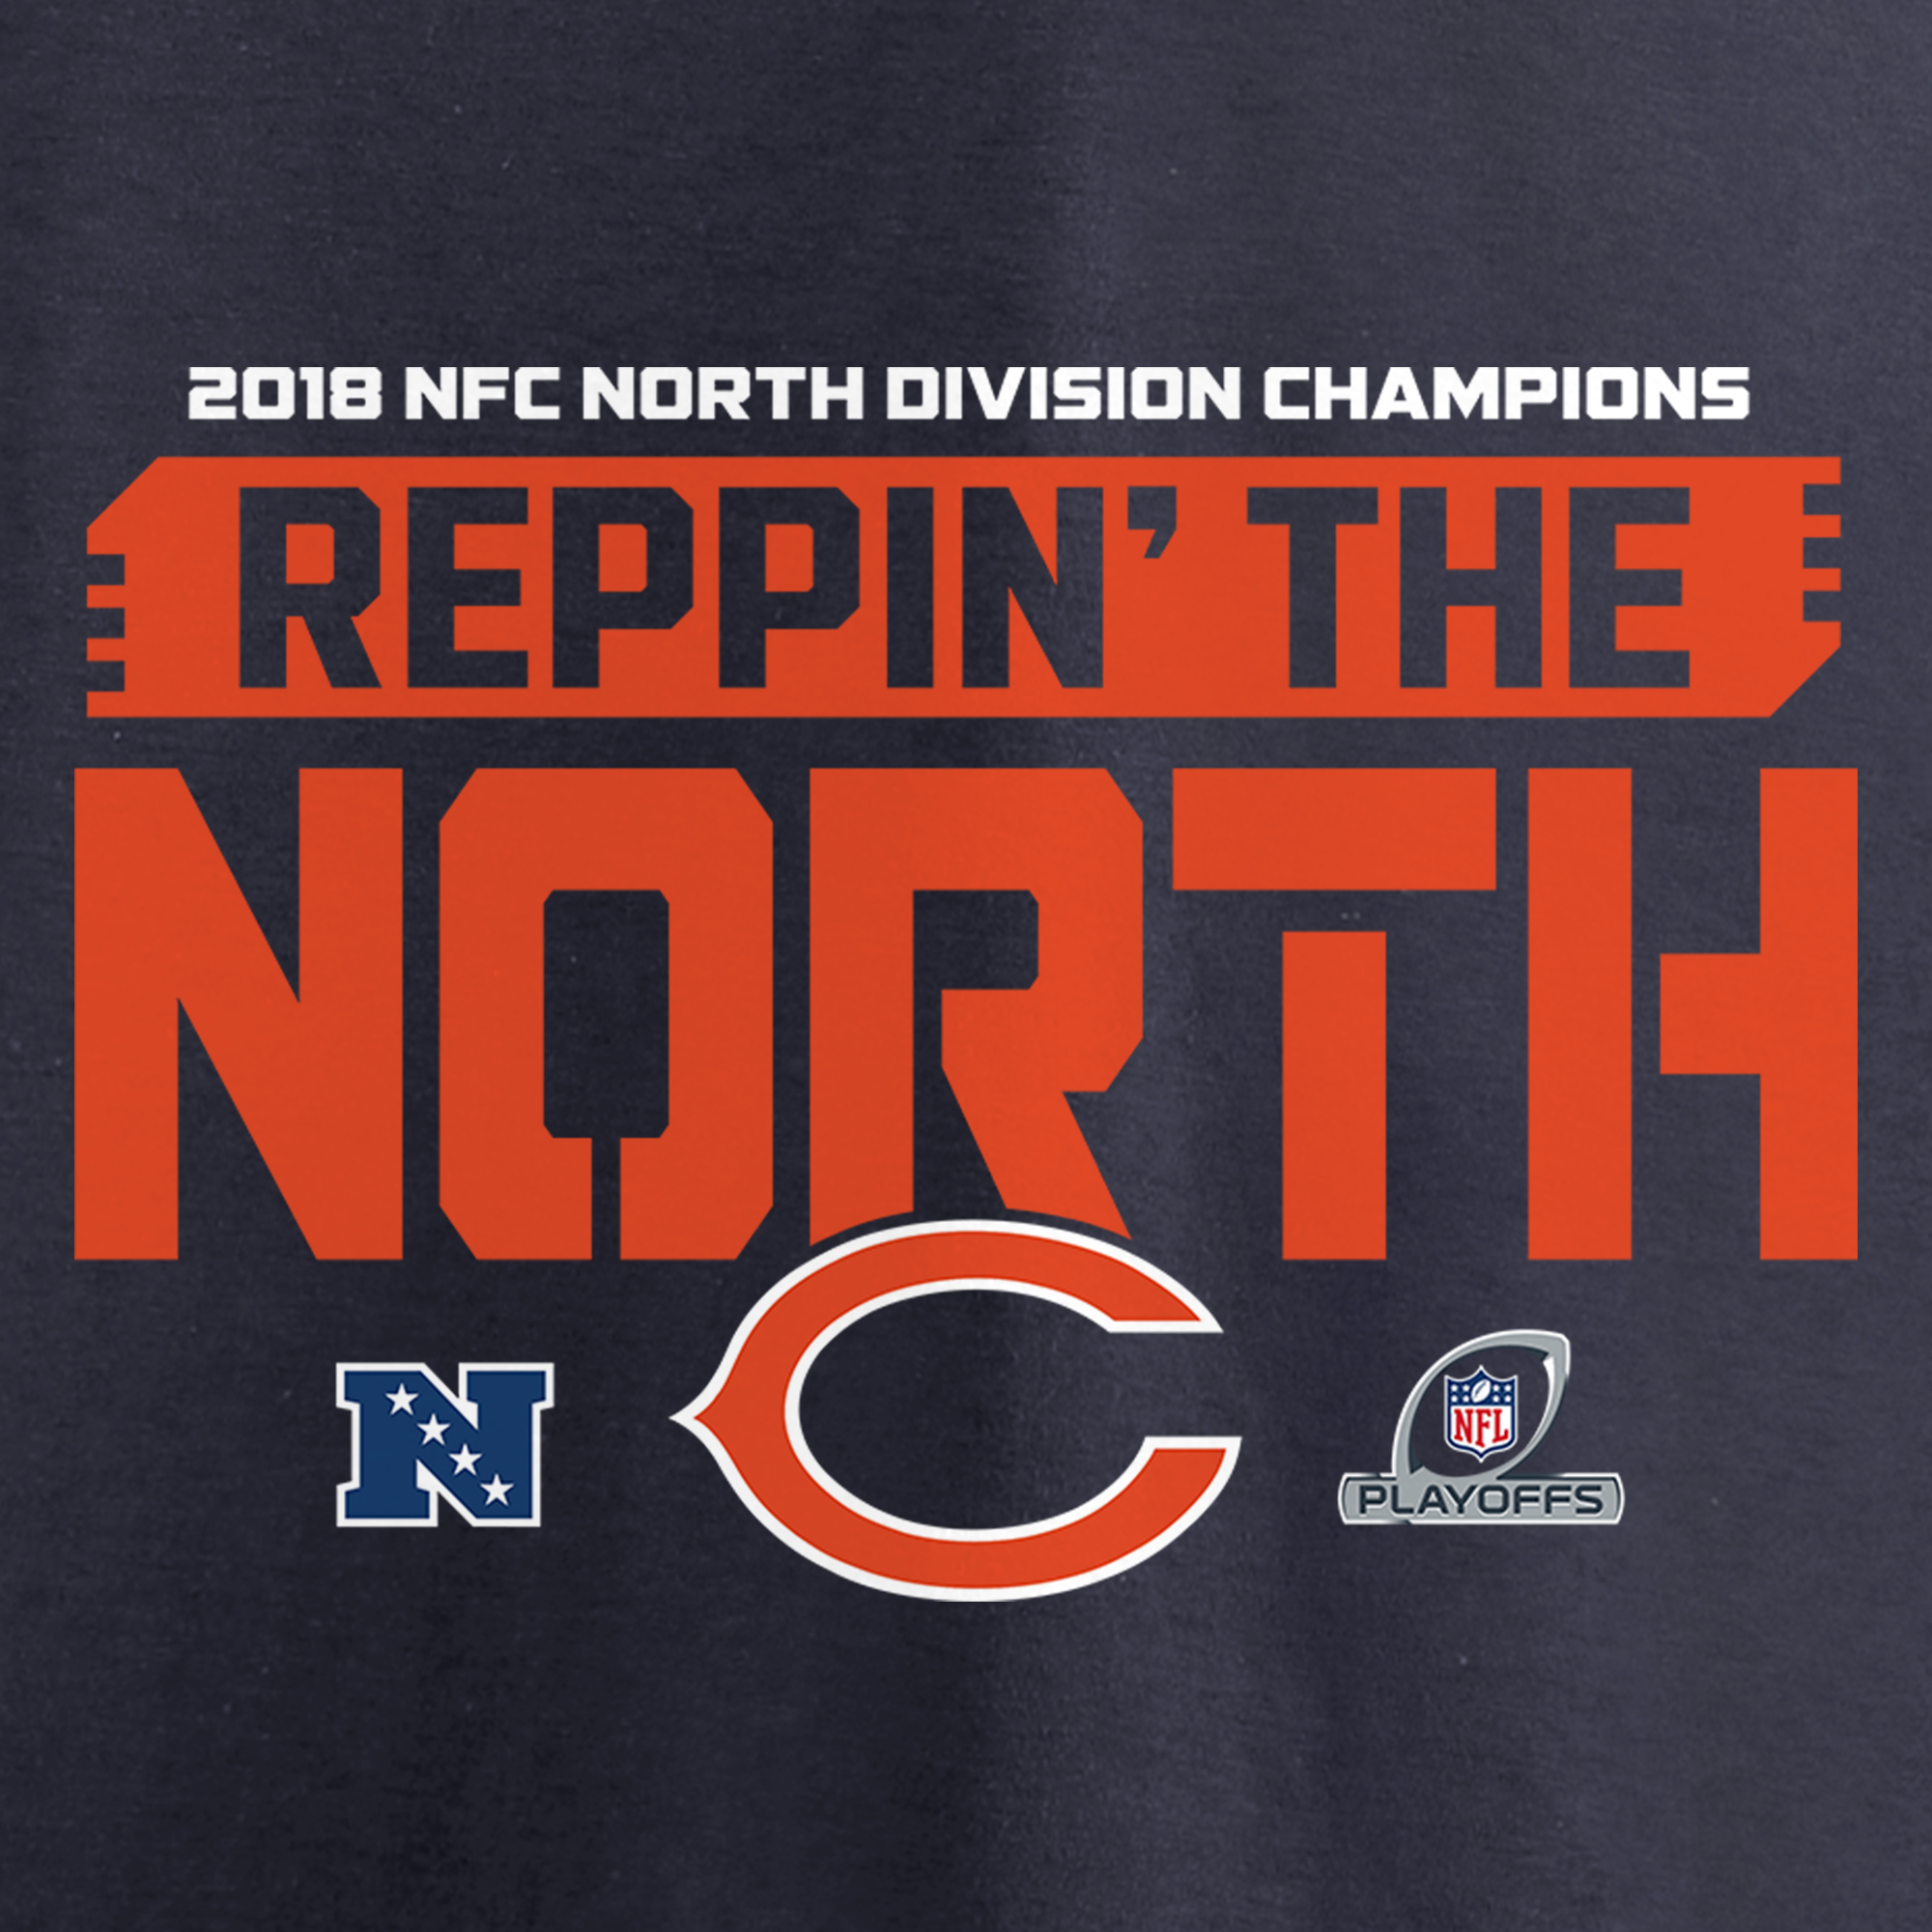 ce10f51a4a9 Chicago Bears NFL Pro Line by Fanatics Branded 2018 NFC North Division  Champions Fair Catch Pullover Hoodie - Navy - Walmart.com